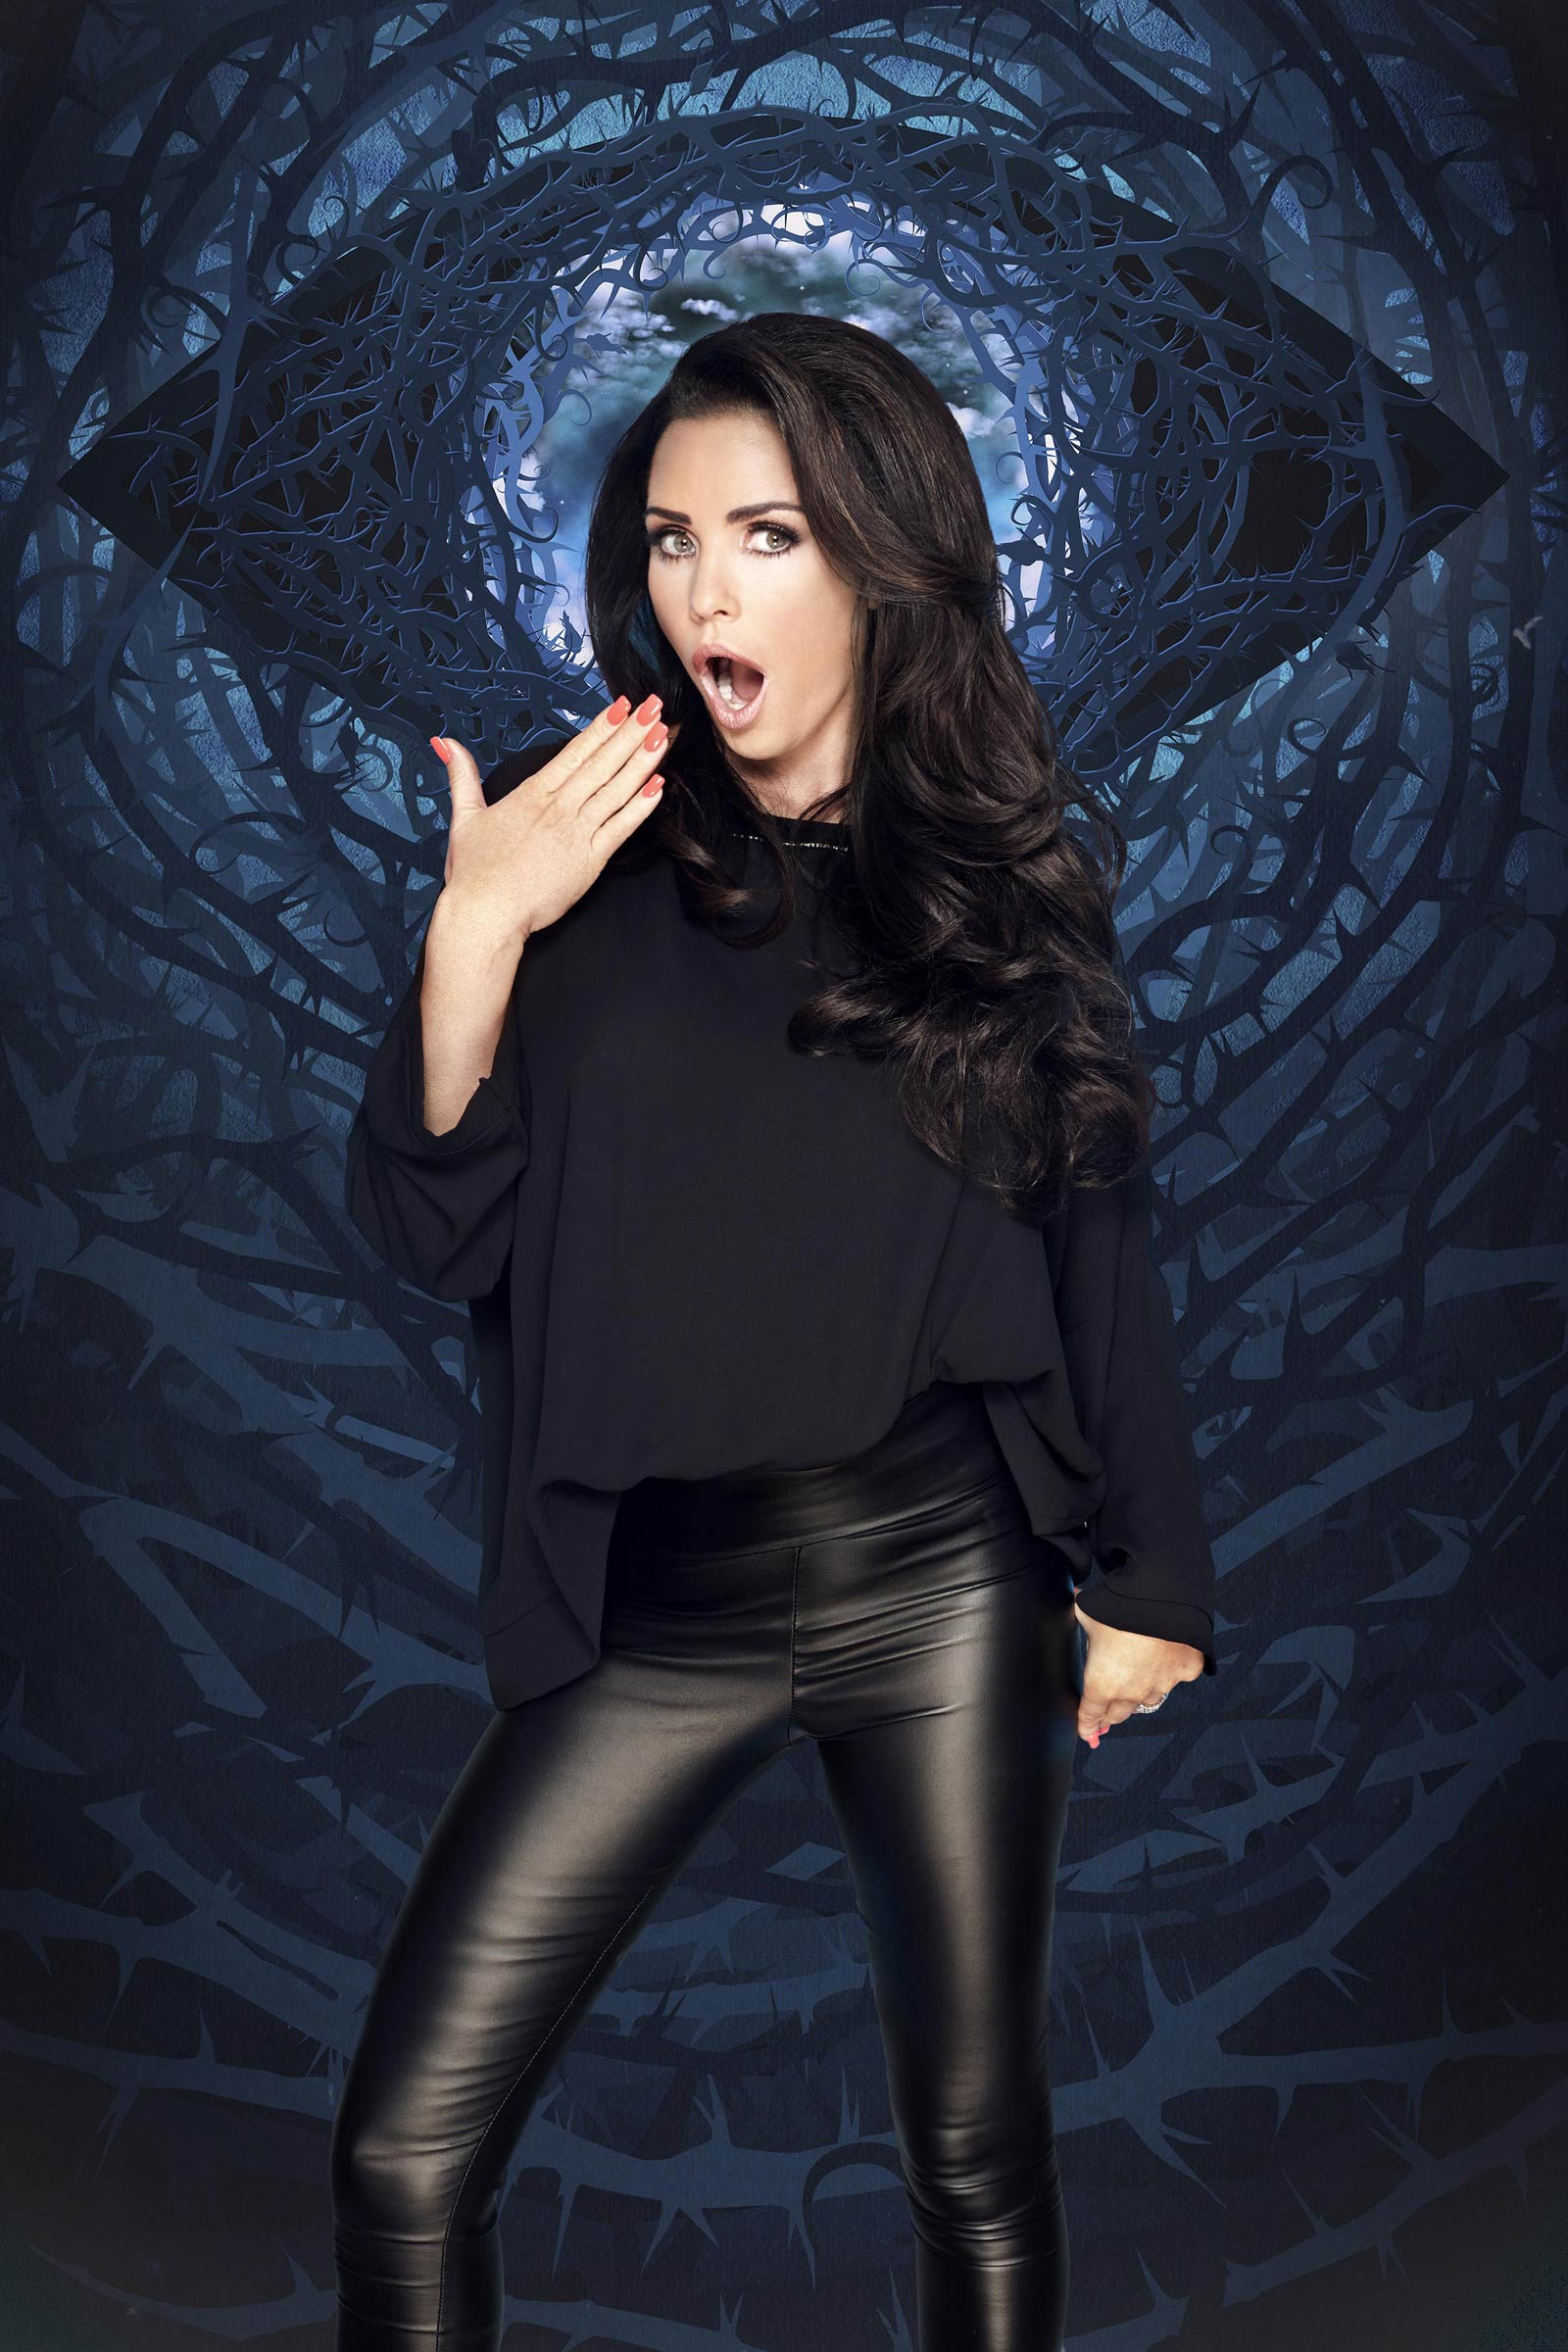 Katie Price Big Brother promos